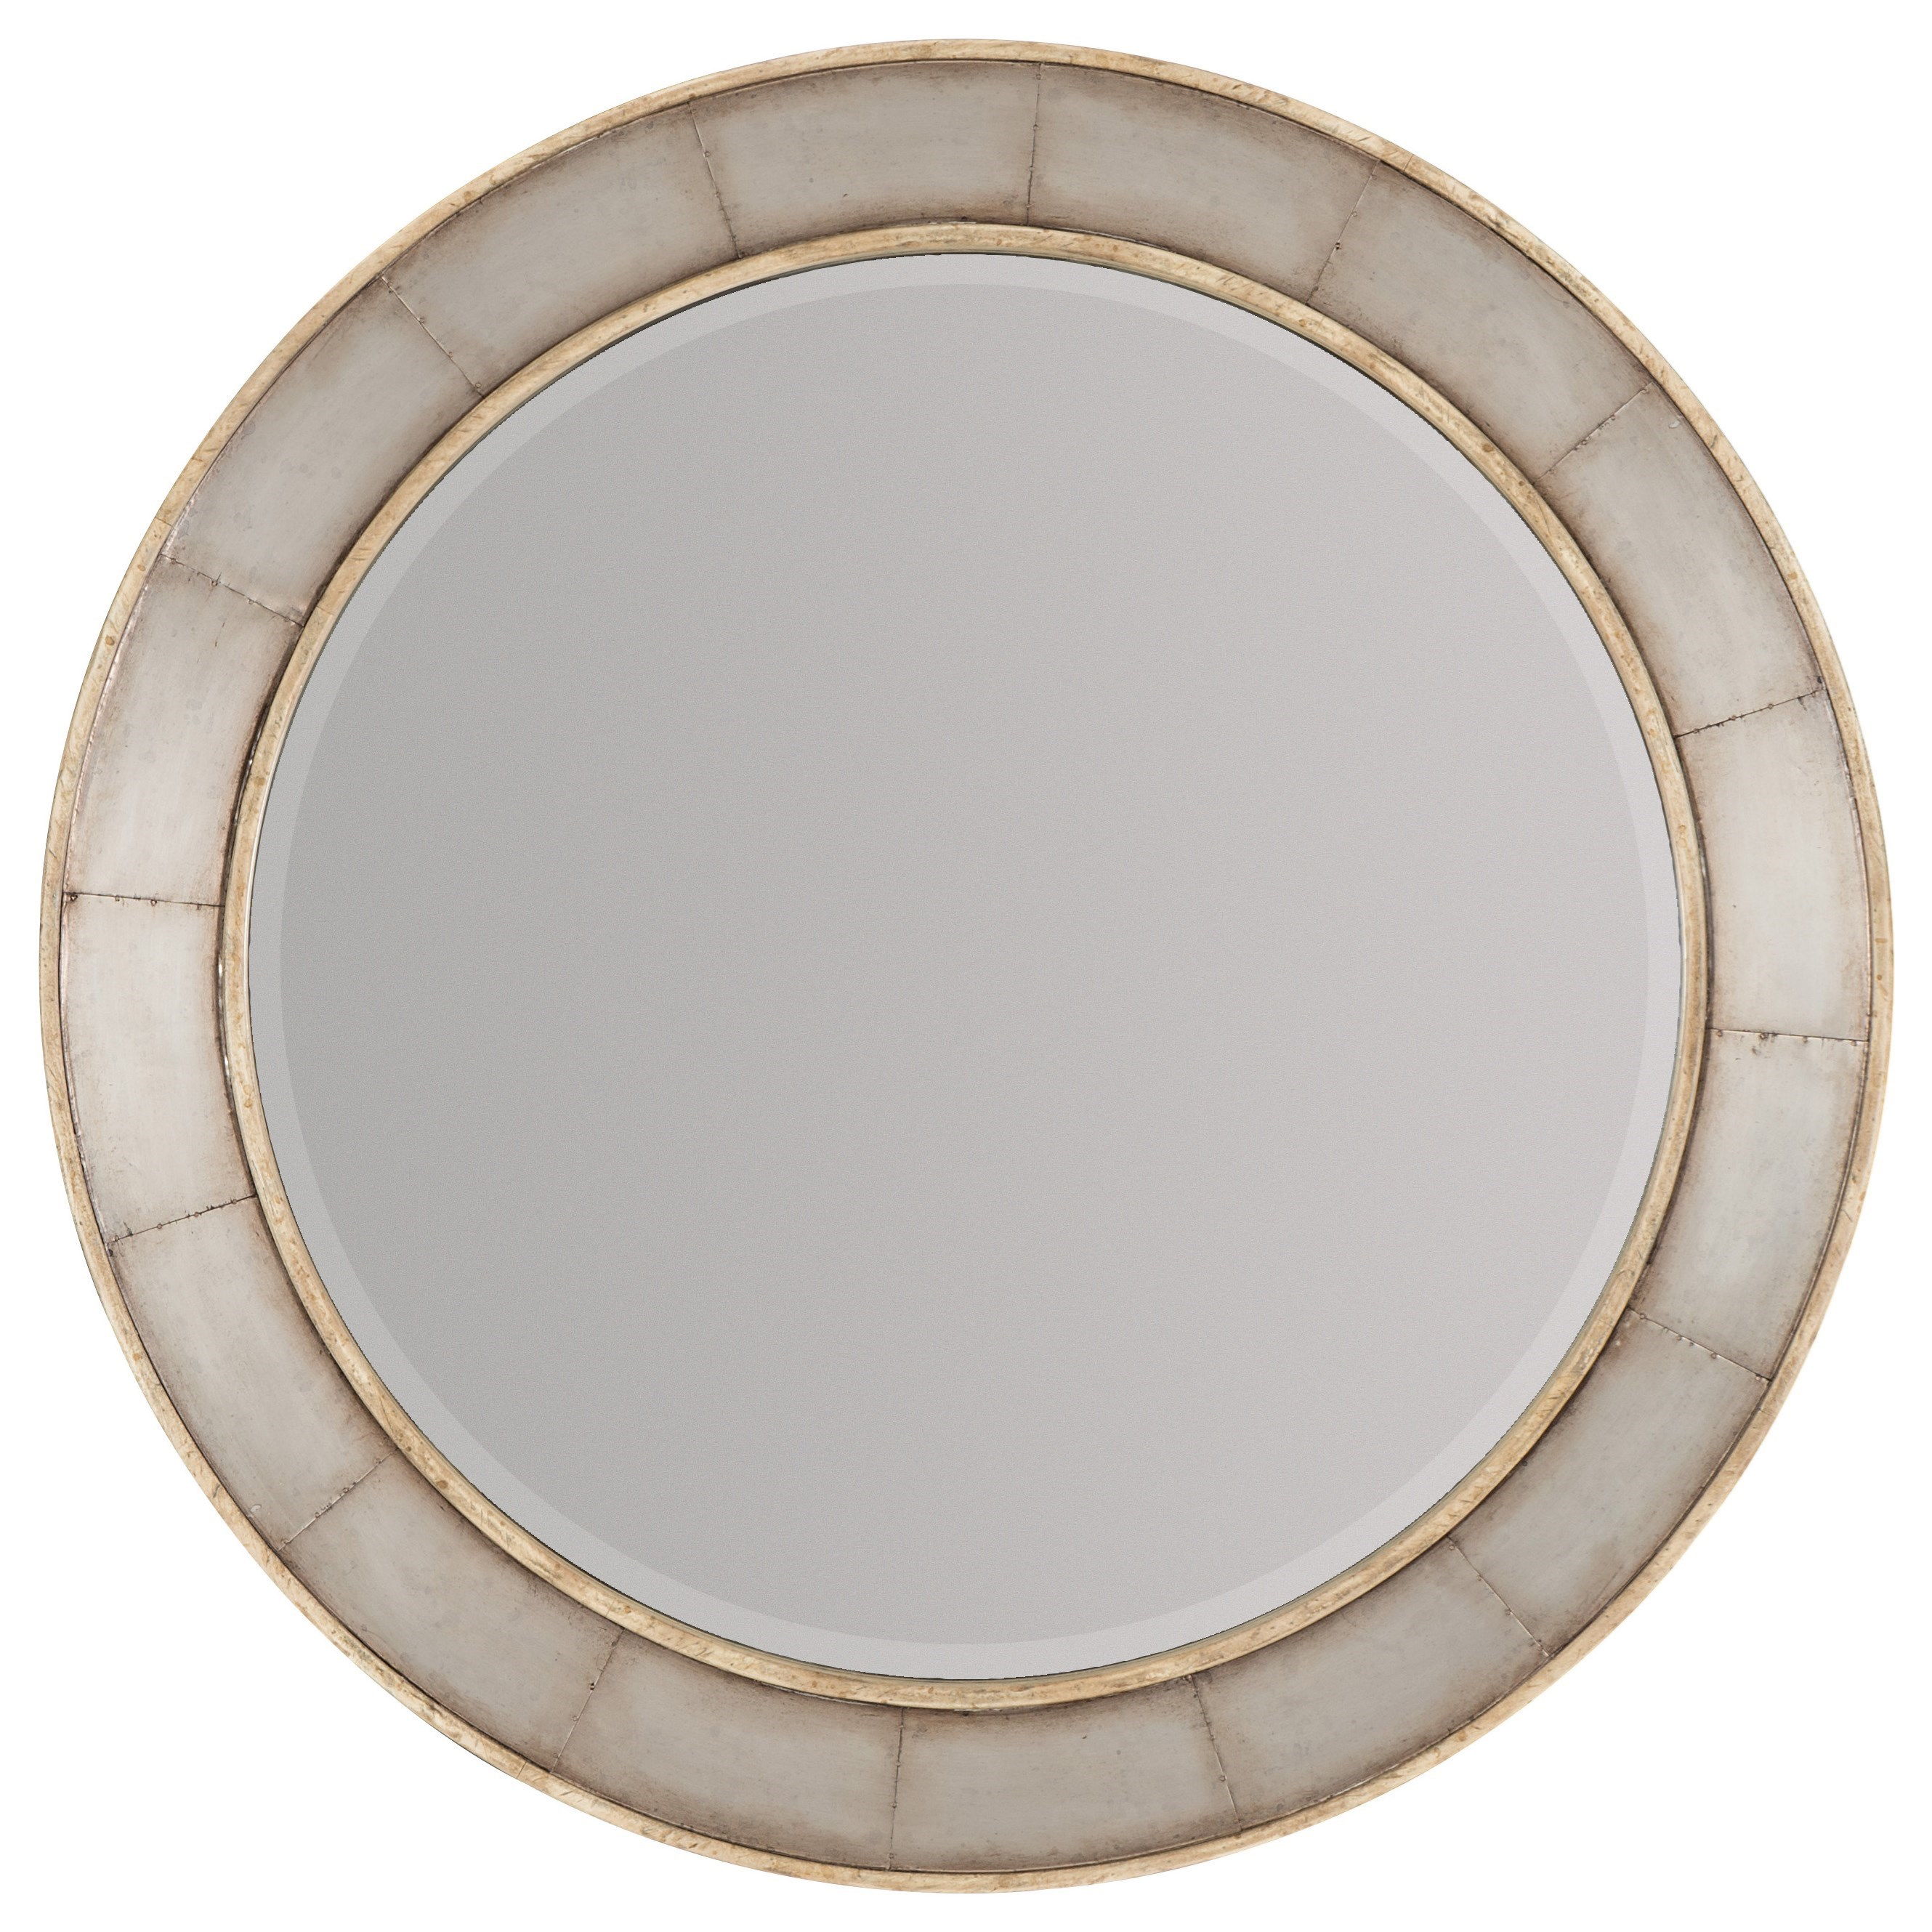 Wood And Glass Elevation : Wood frame round mirror with metal inlay by hooker